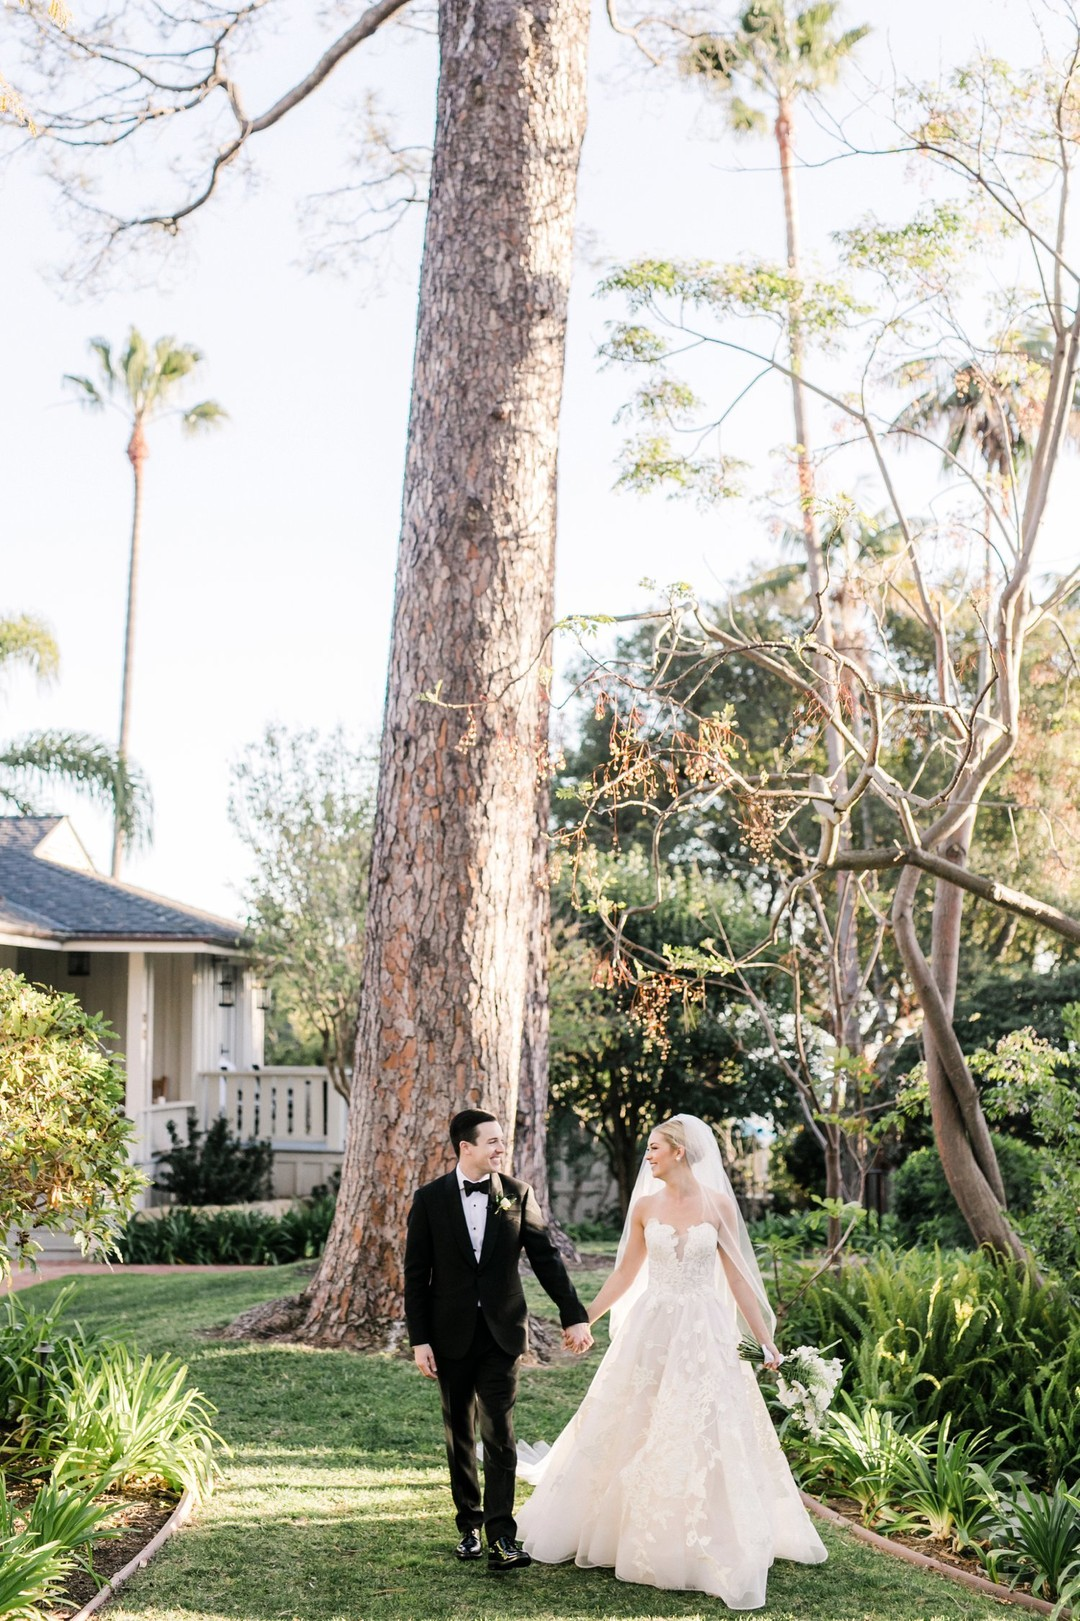 www.santabarbarawedding.com | Anna Delores | Vanessa Noel Events | Belmond El Encanto | Bride and Groom